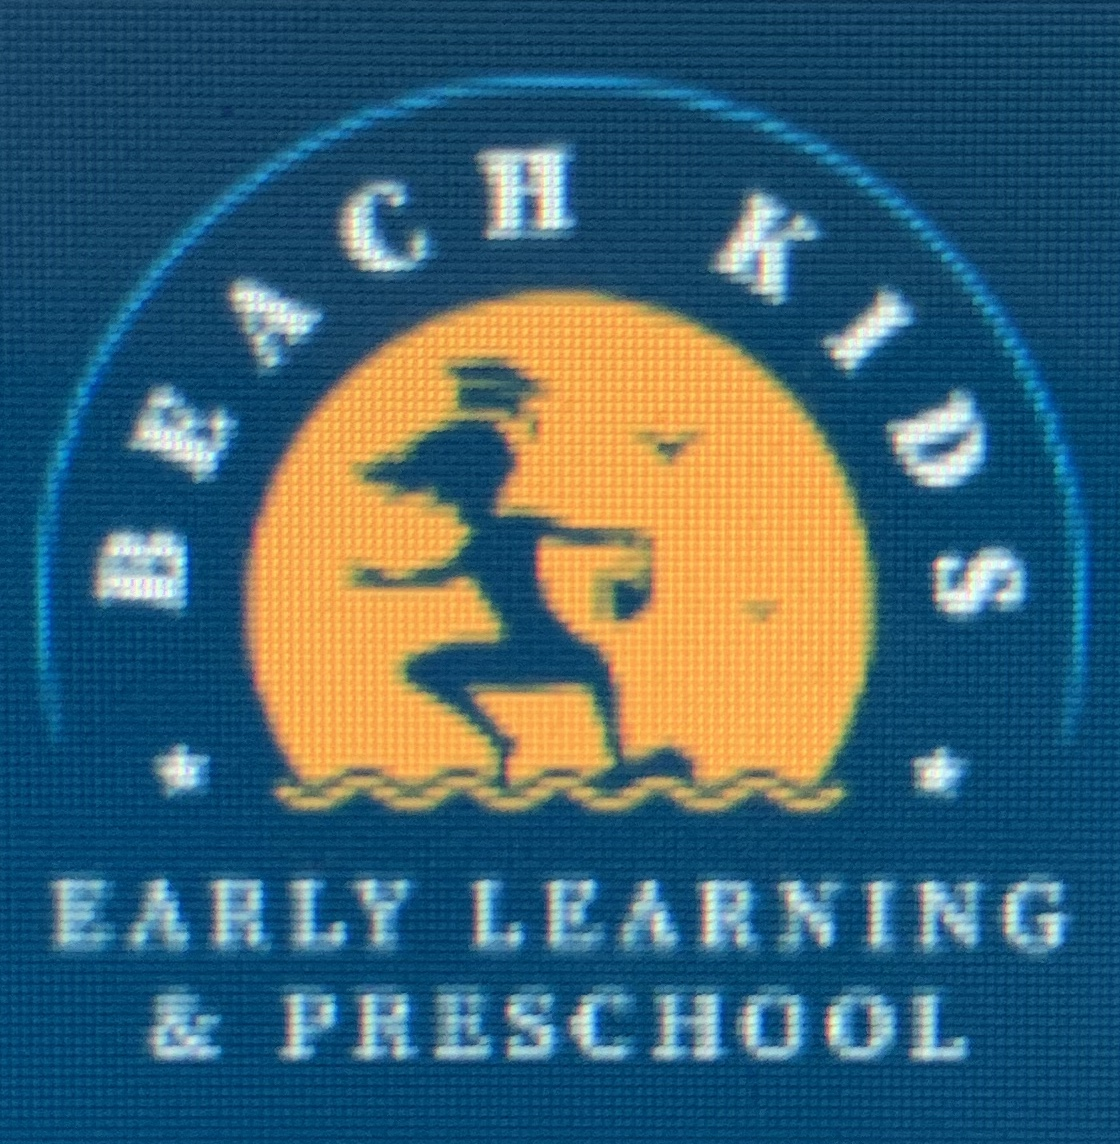 Beach kids early learning